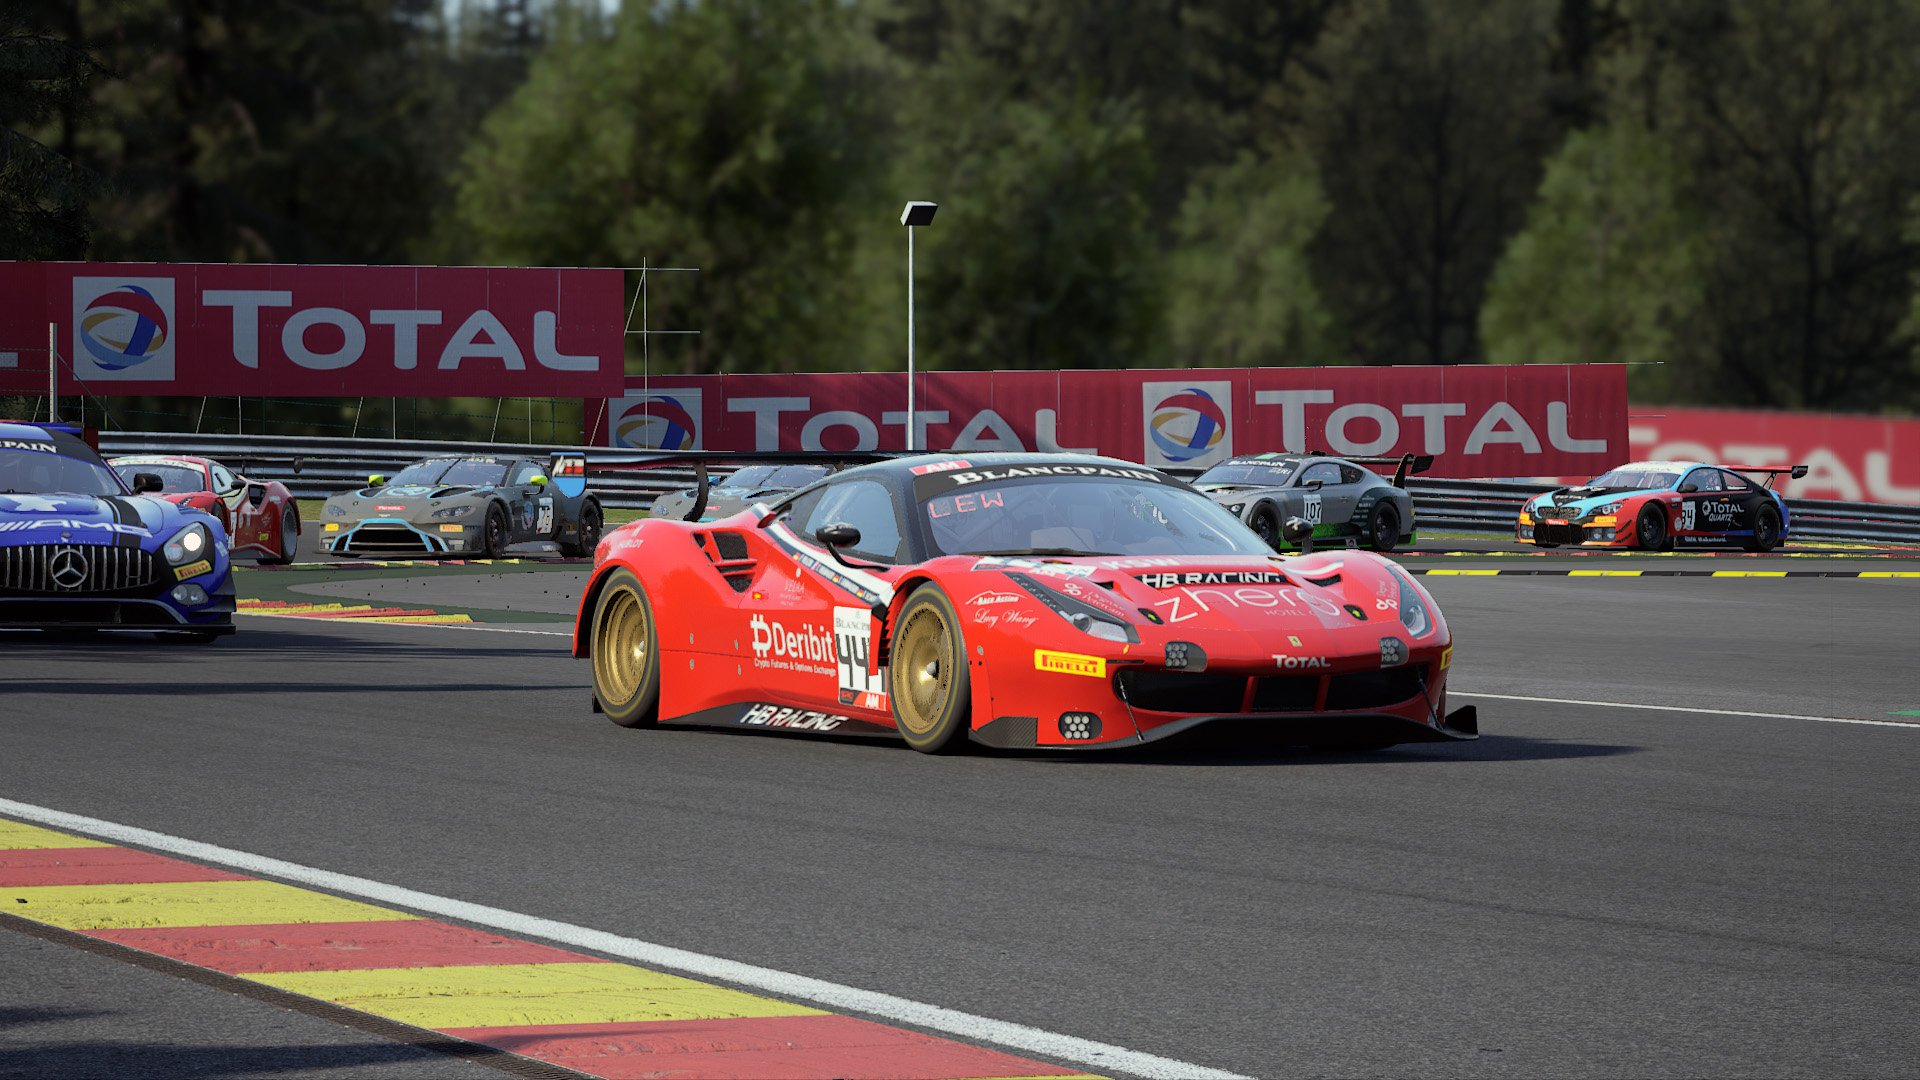 shop.gperformance.eu - Assetto Corsa Competizione ingame screenshot - Ferrari GT3 - G-Performance